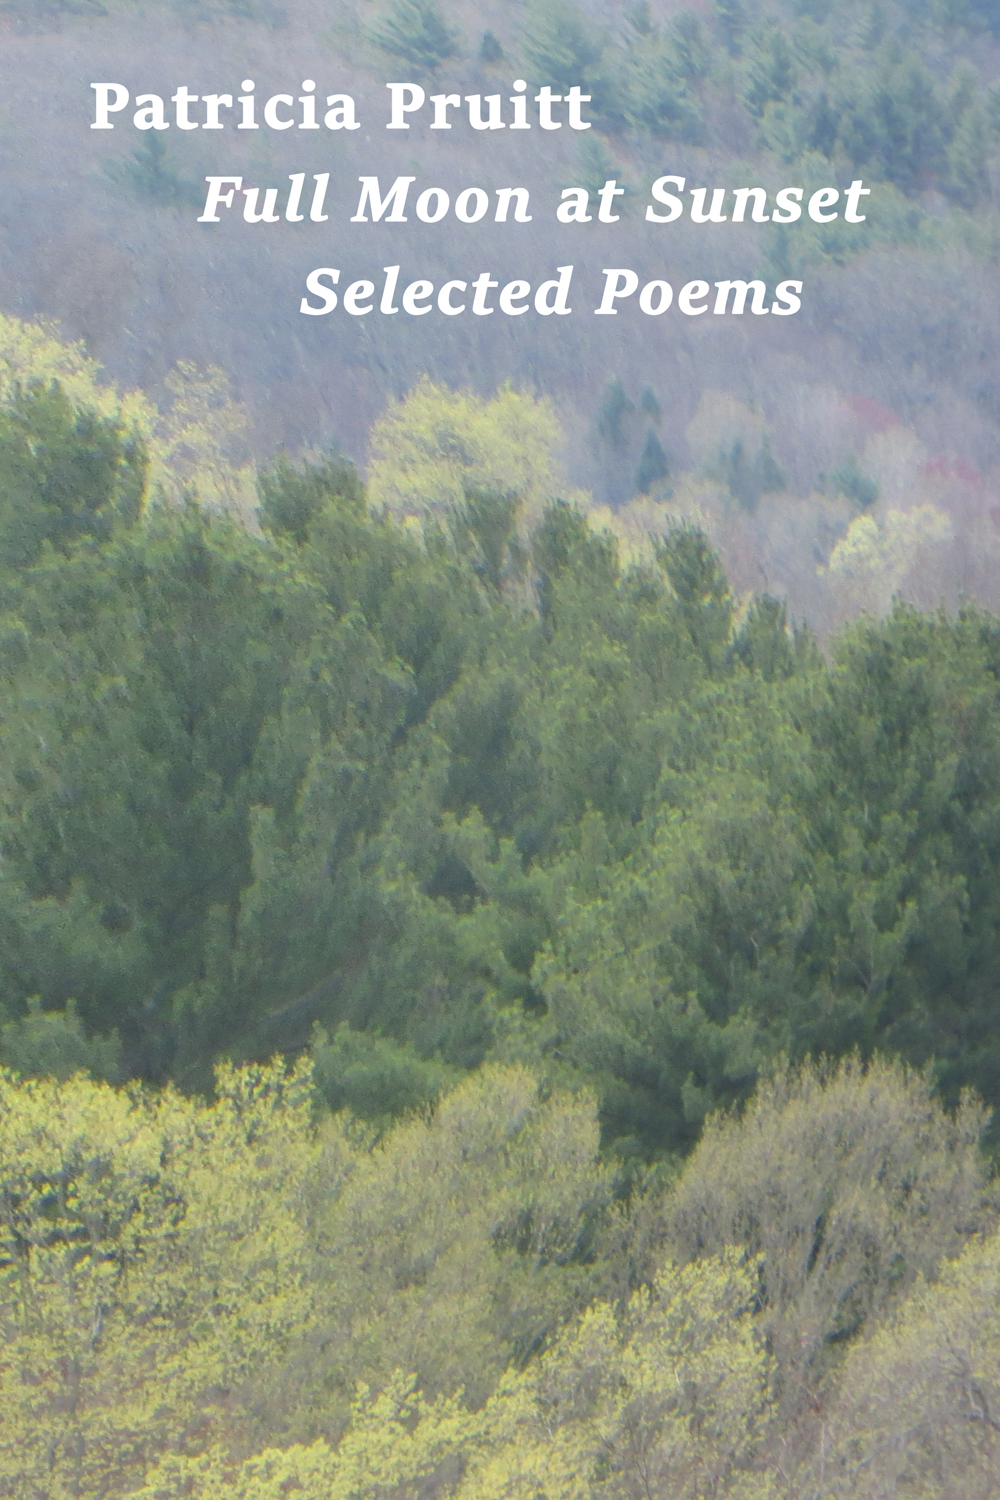 Full Moon at Sunset: Selected Poems